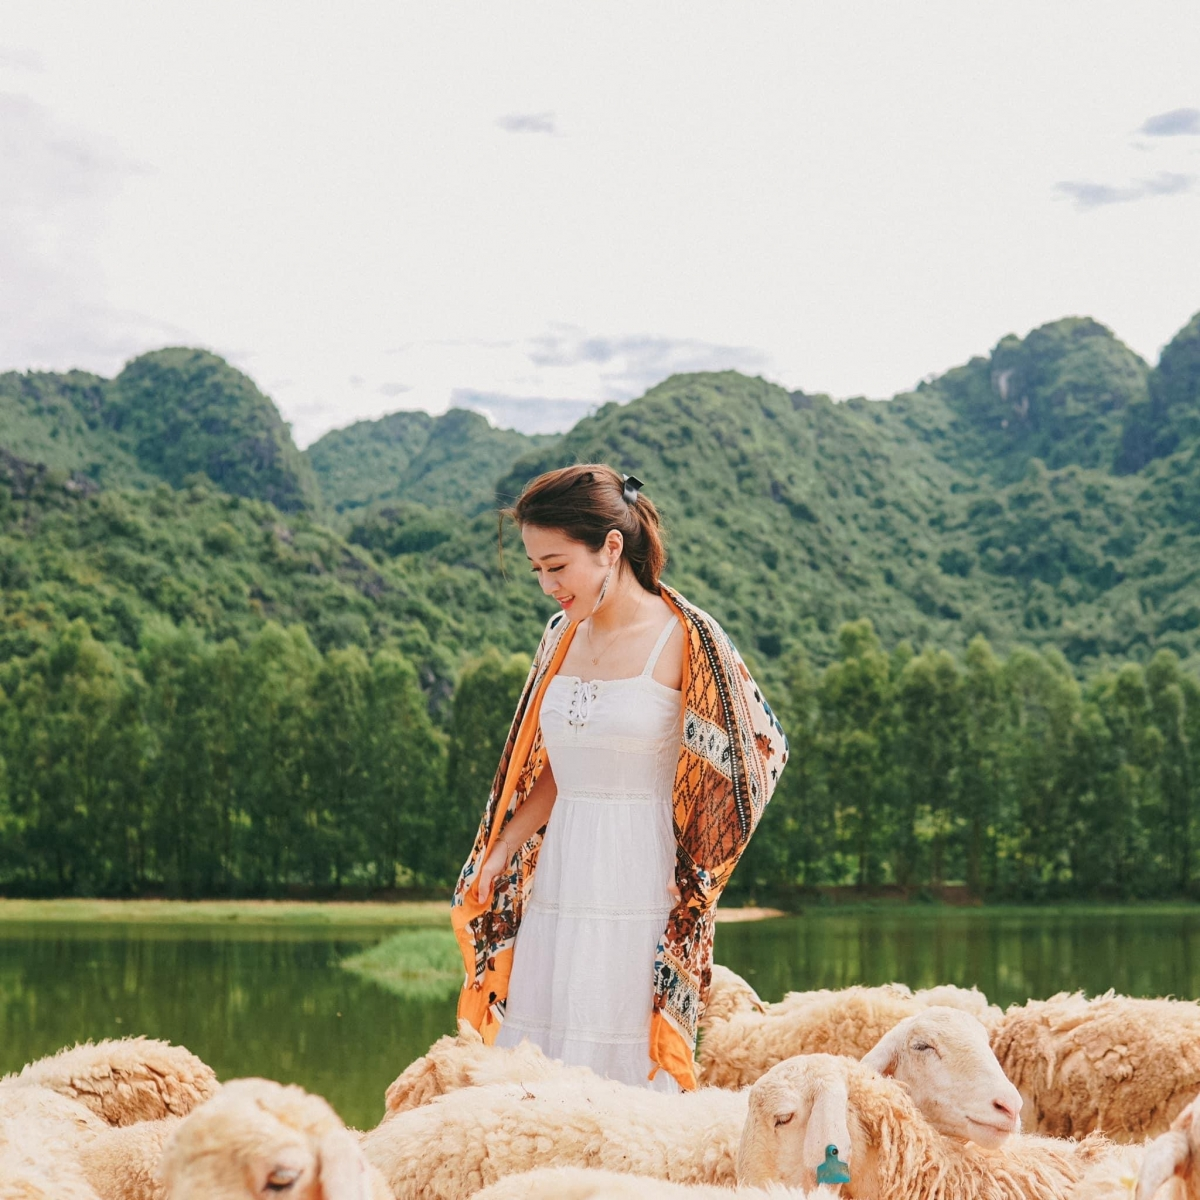 Emerging in the past year, along with Hang Dance, Gia Hung Ninh Binh sheep field is the hottest check-in point in Gia Vien district.  The vast sheep fields are quietly lying on the dike slopes, promising to bring you many beautiful virtual live photos.